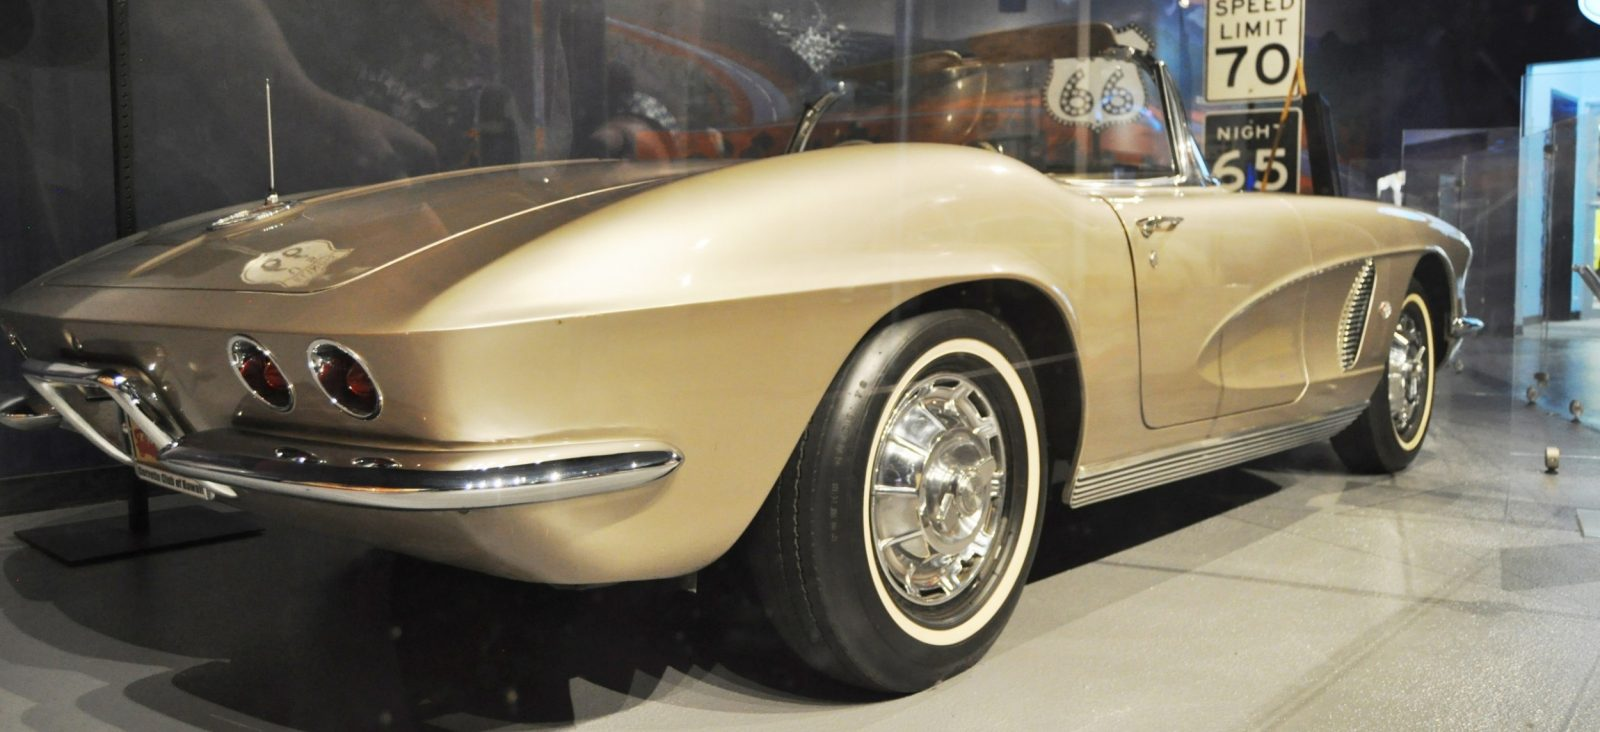 Corvette Museum Photo Tour -- The C1, C2 and C3 Generations in 83 High-Res Photos 45